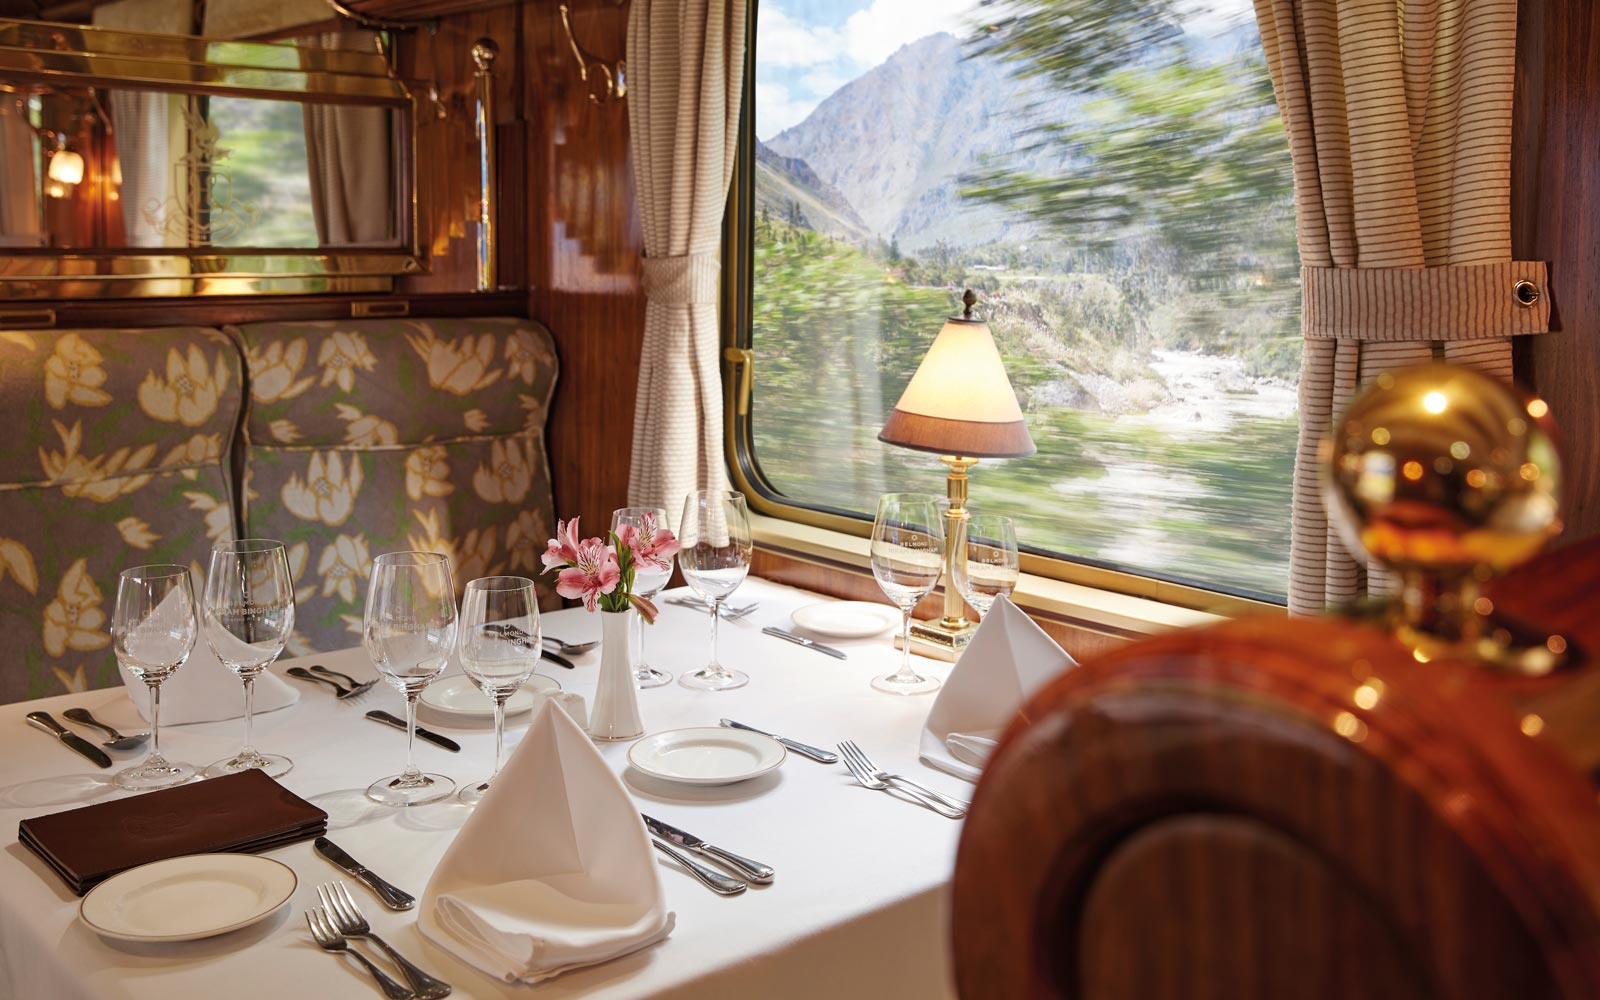 This luxury train to Machu Picchu winds through the Peruvian Highlands in style